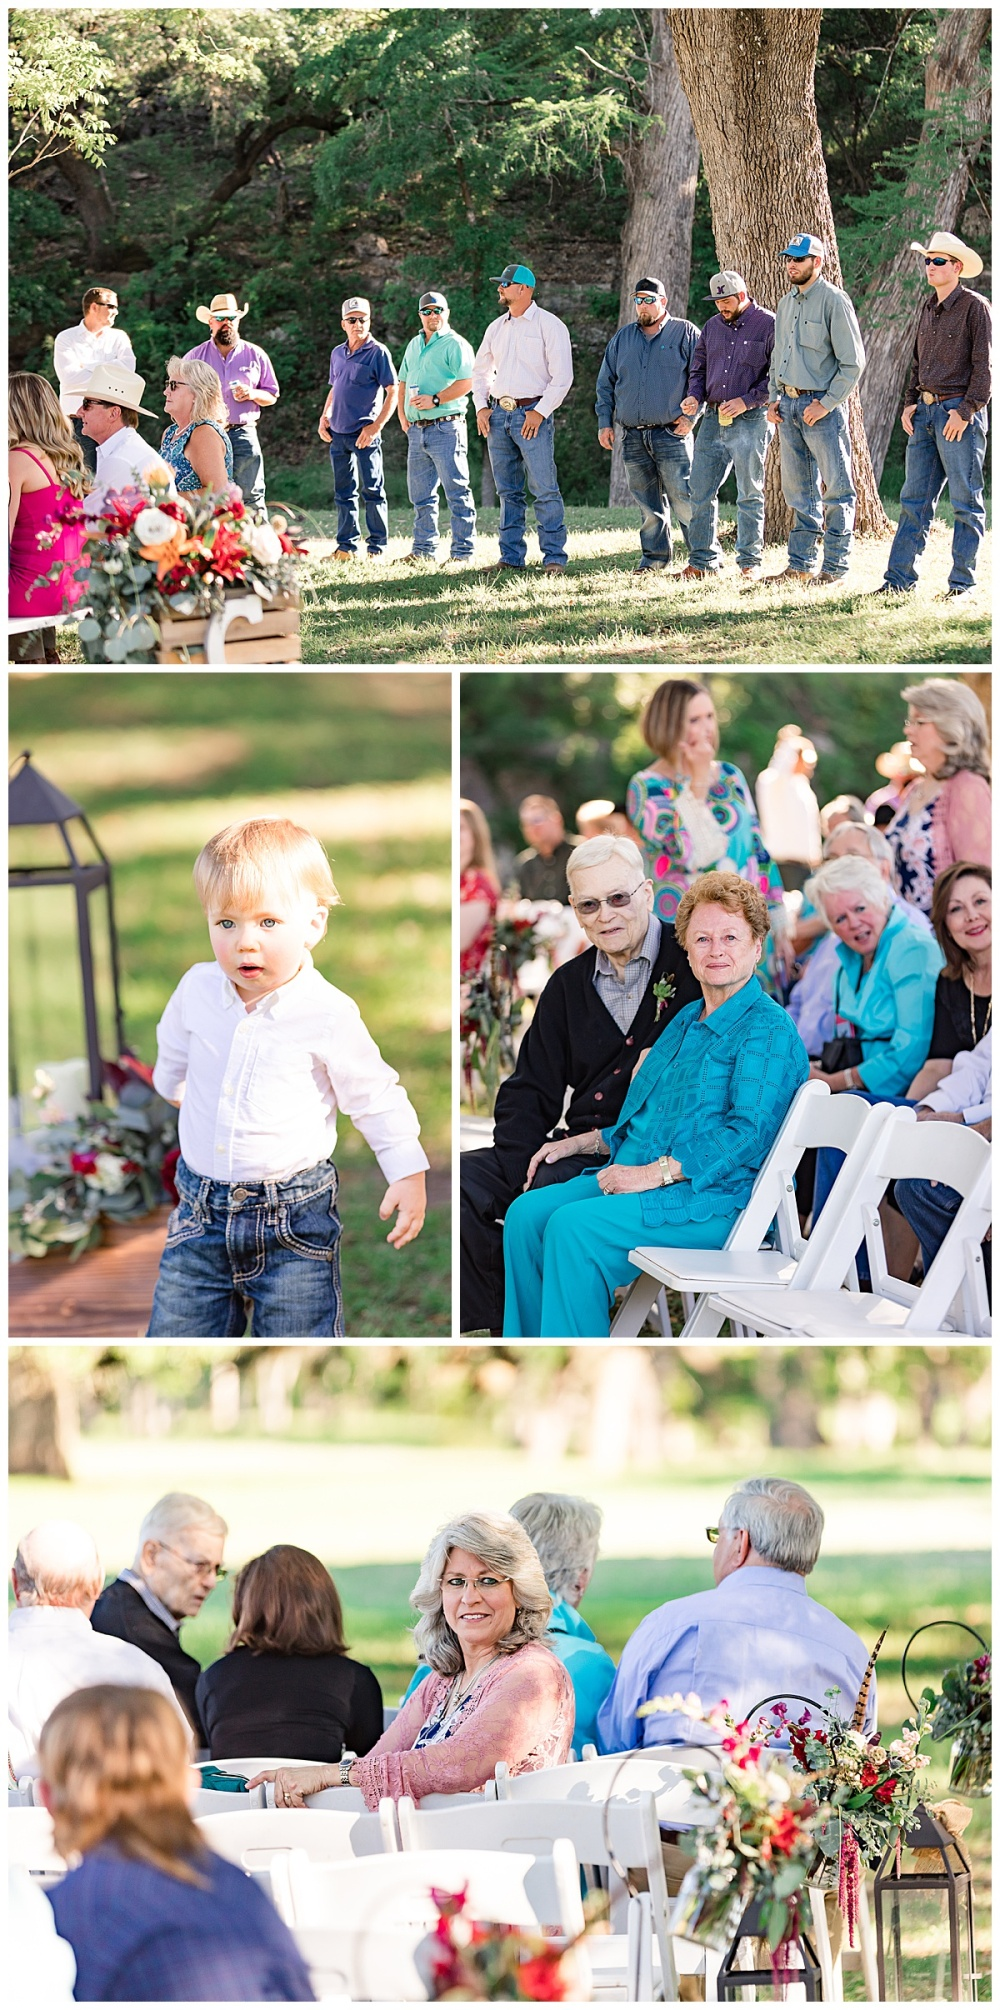 Eagle-Dancer-Ranch-Boerne-Texas-Wedding-Party-Barn-Carly-Barton-Photography_0024.jpg